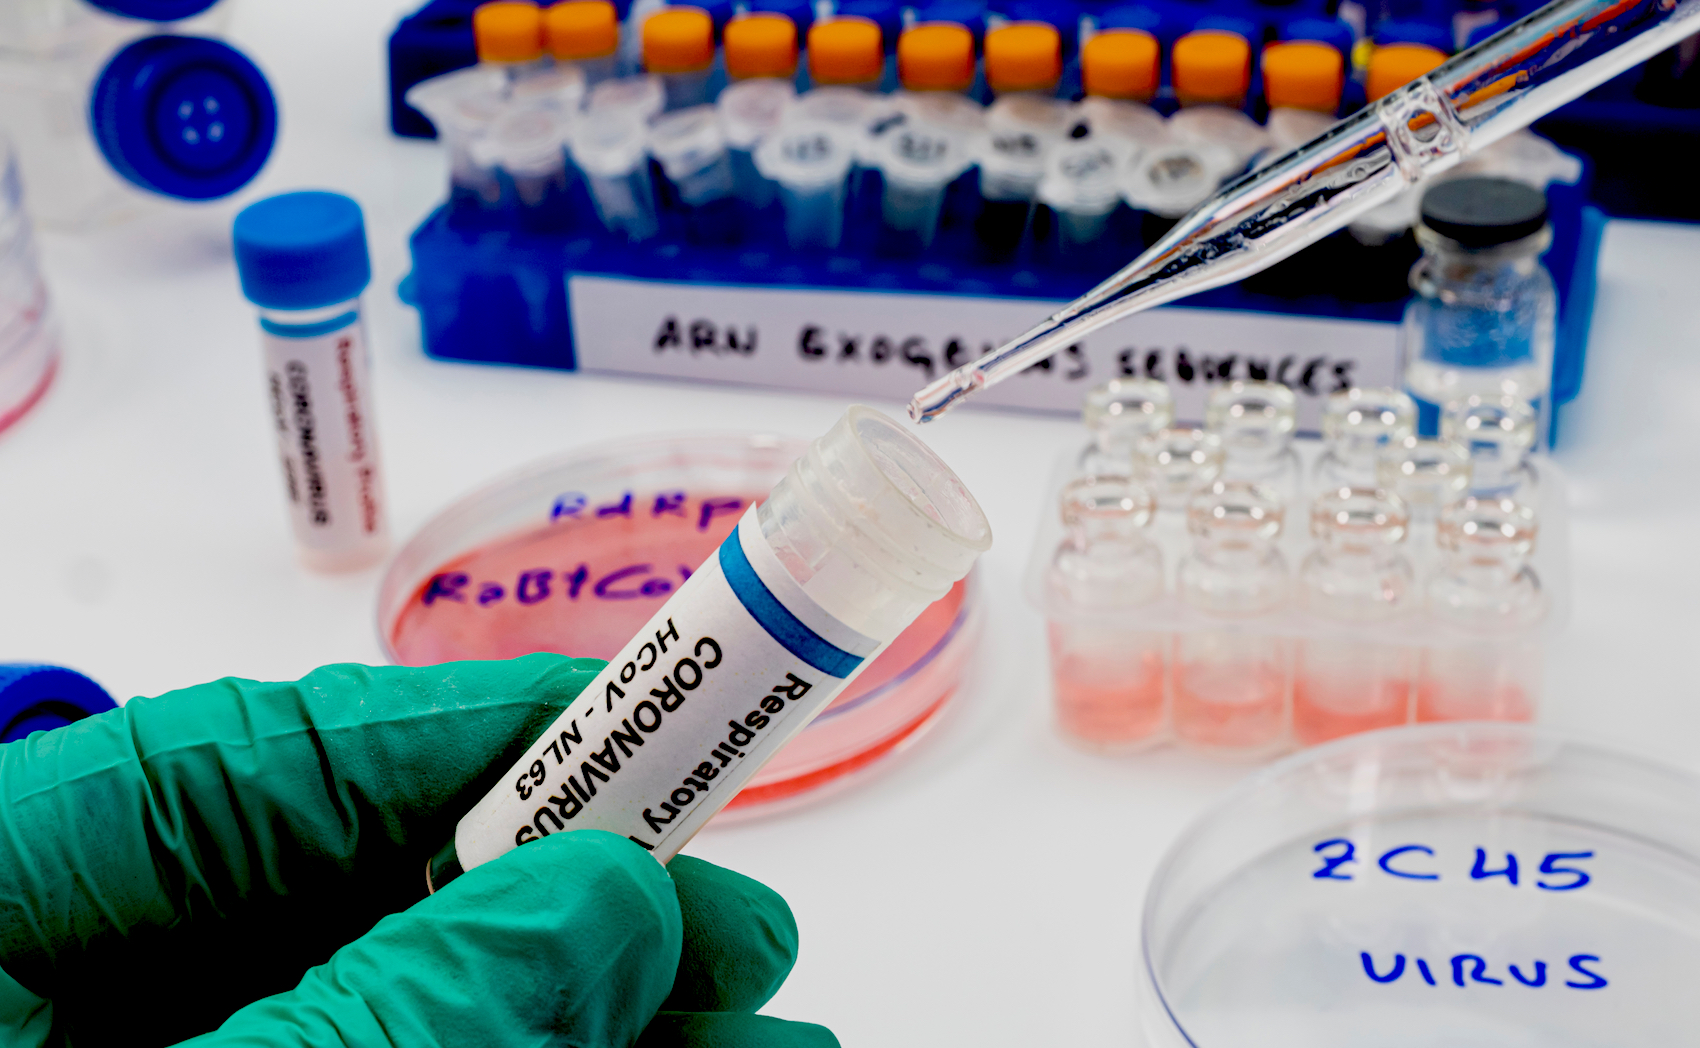 covidsequencing (variant testing)